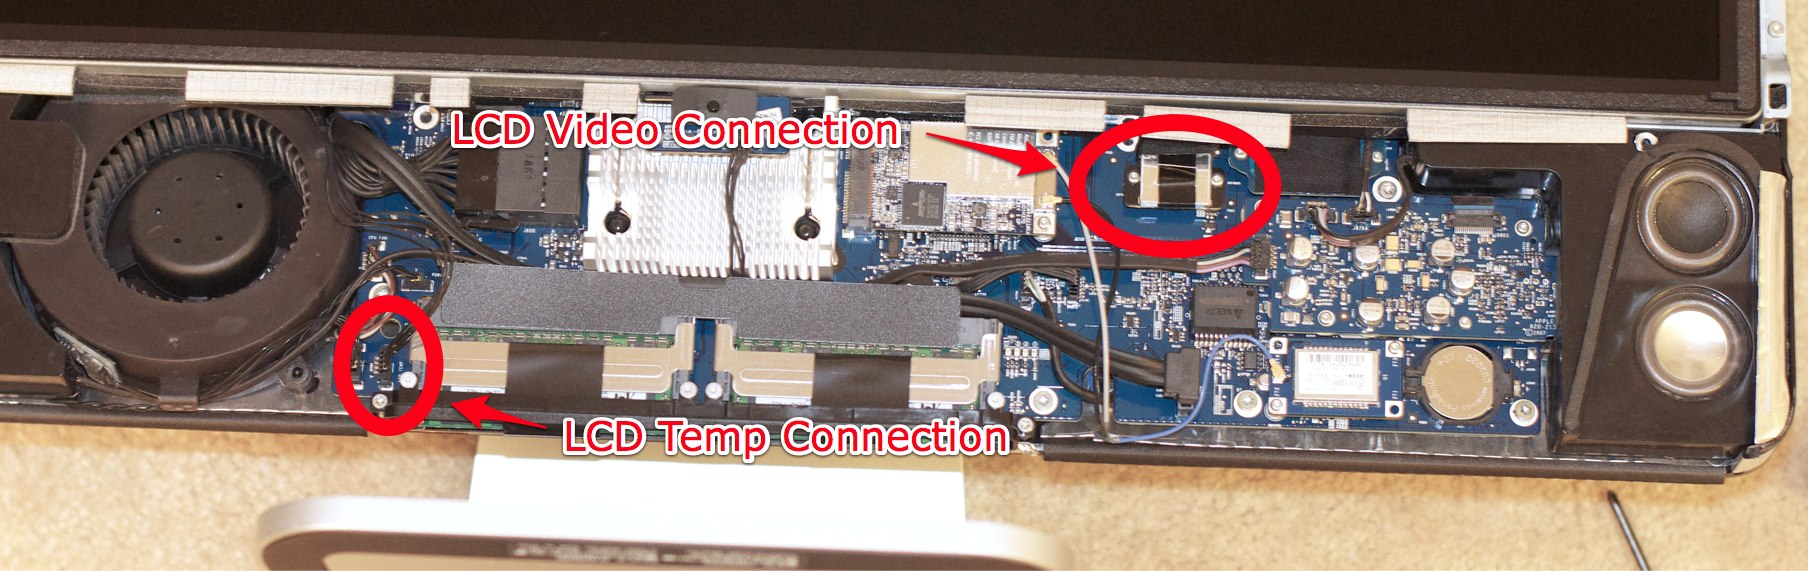 iMac LCD Display Connections - to Disconnect